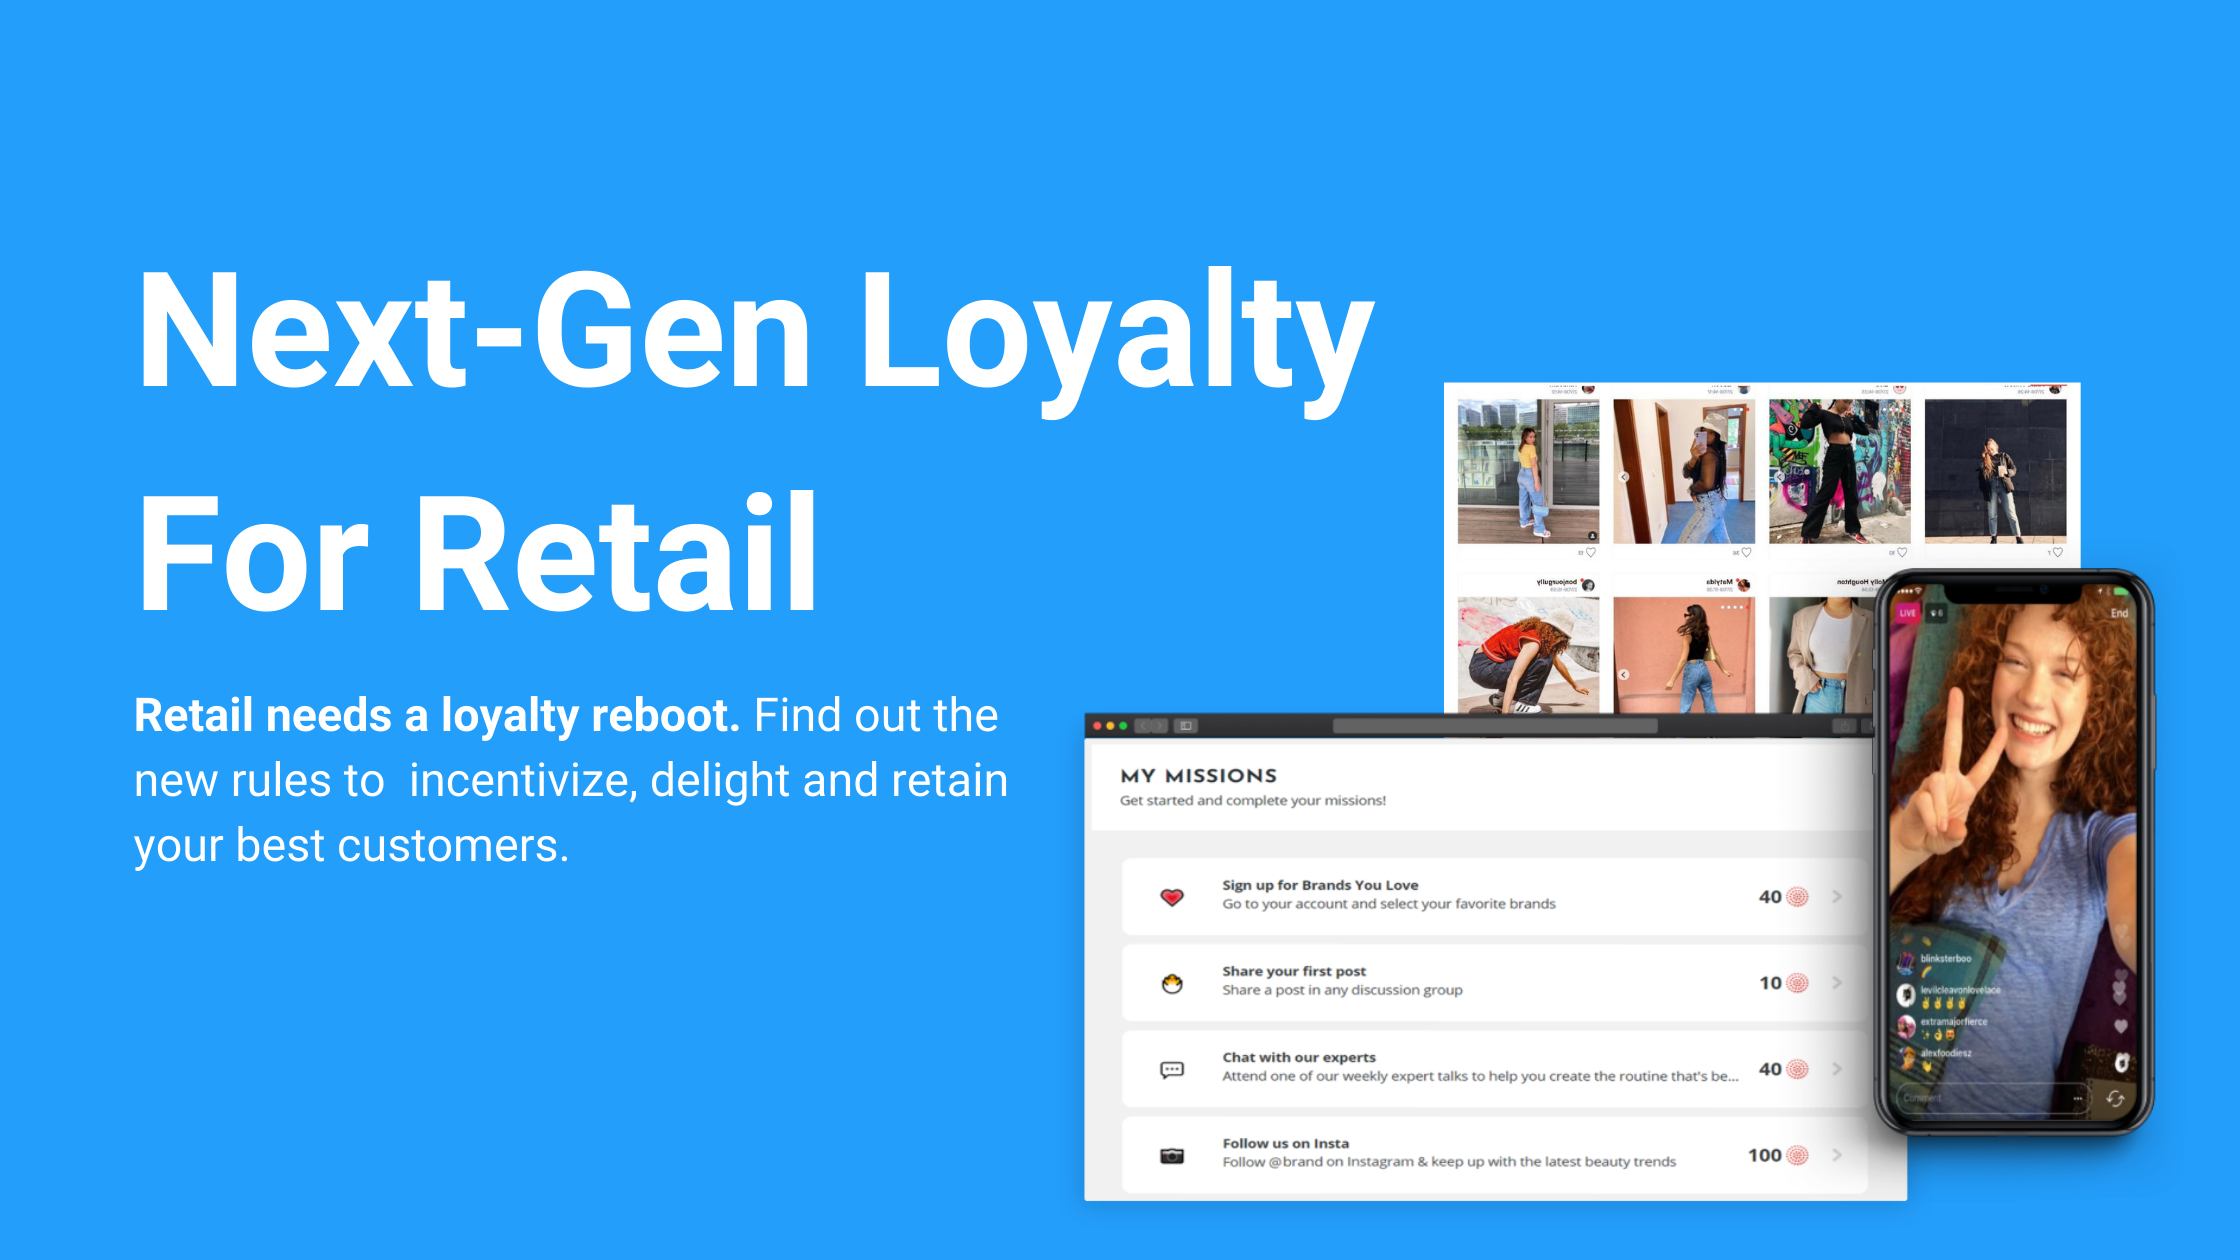 Loyalty programs for retail